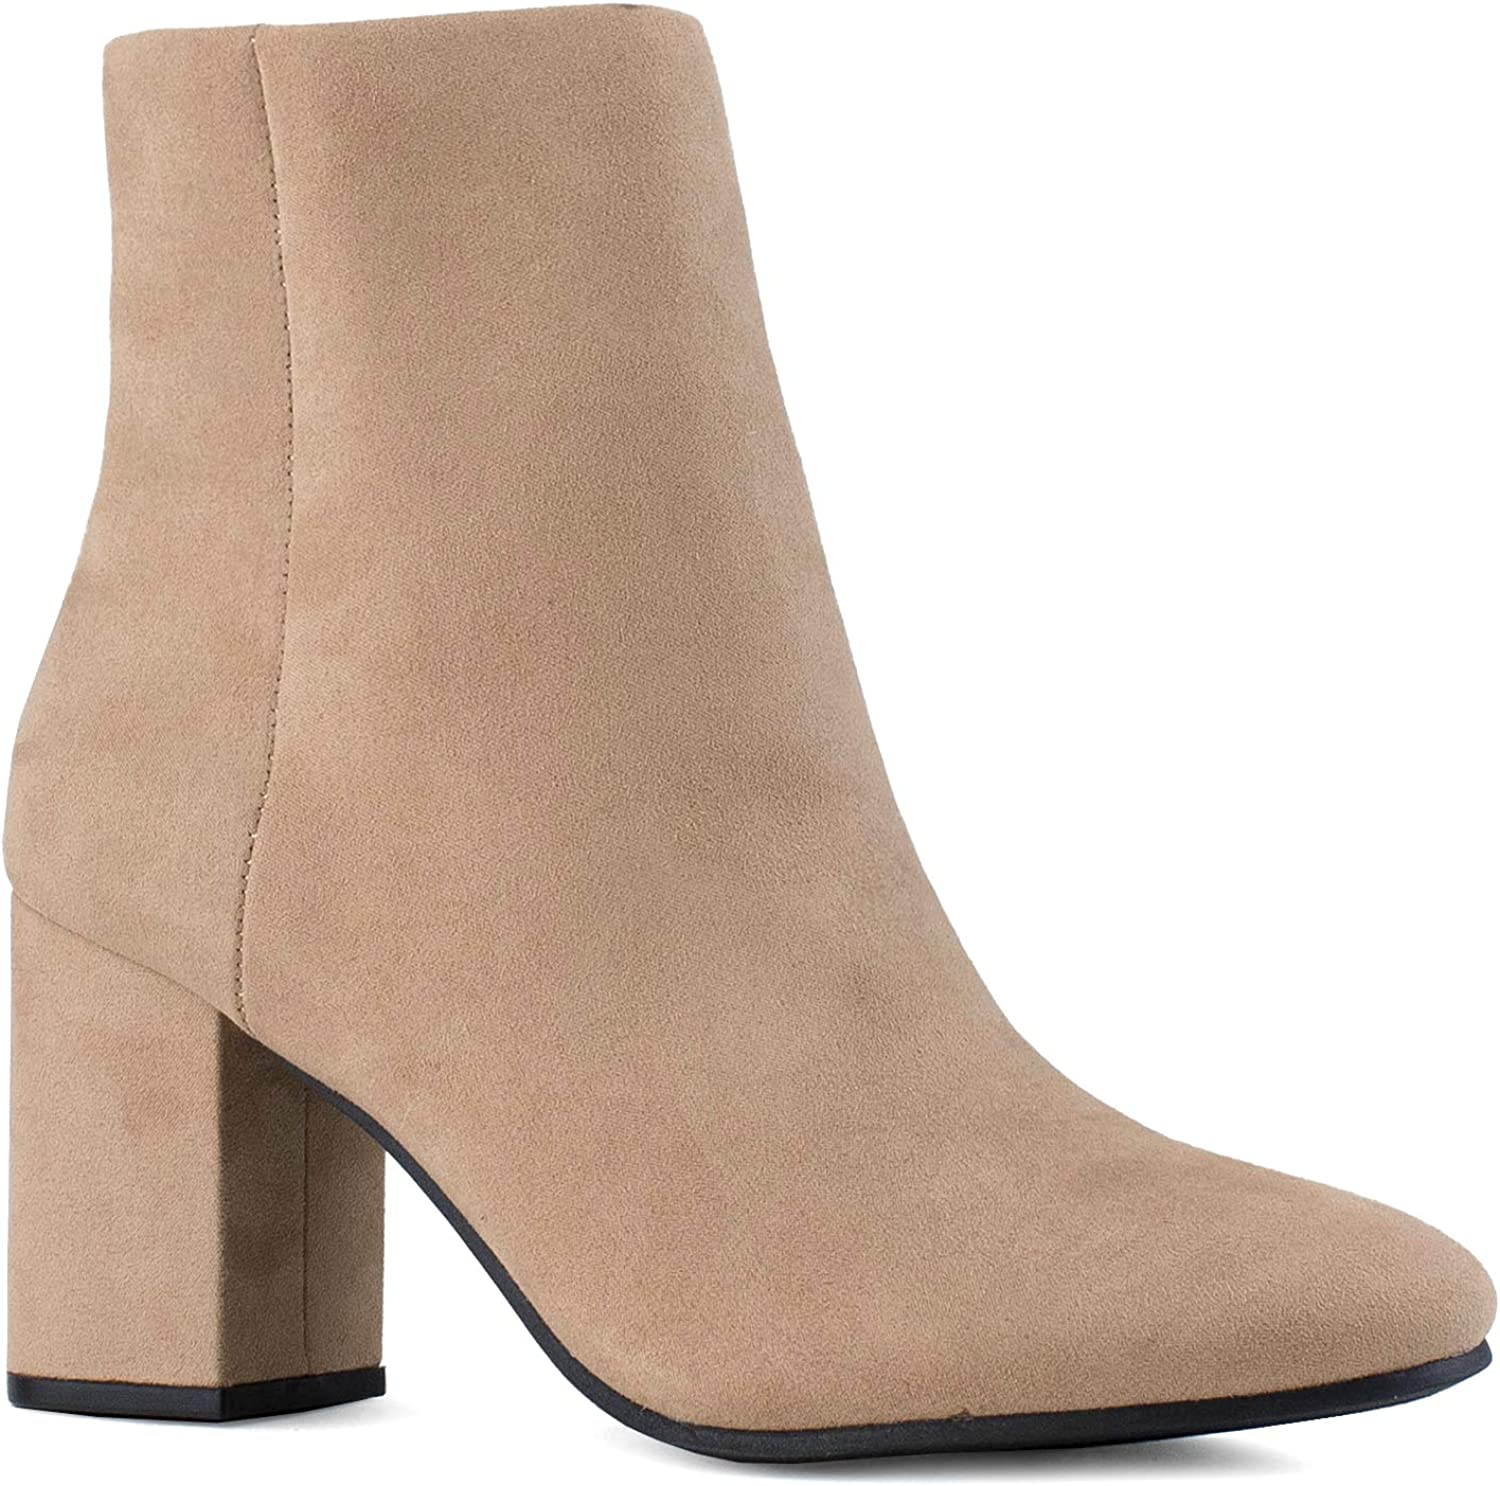 Women's Round Toe Chunky Heeled Side Zip Slim Fit Ankle Booties